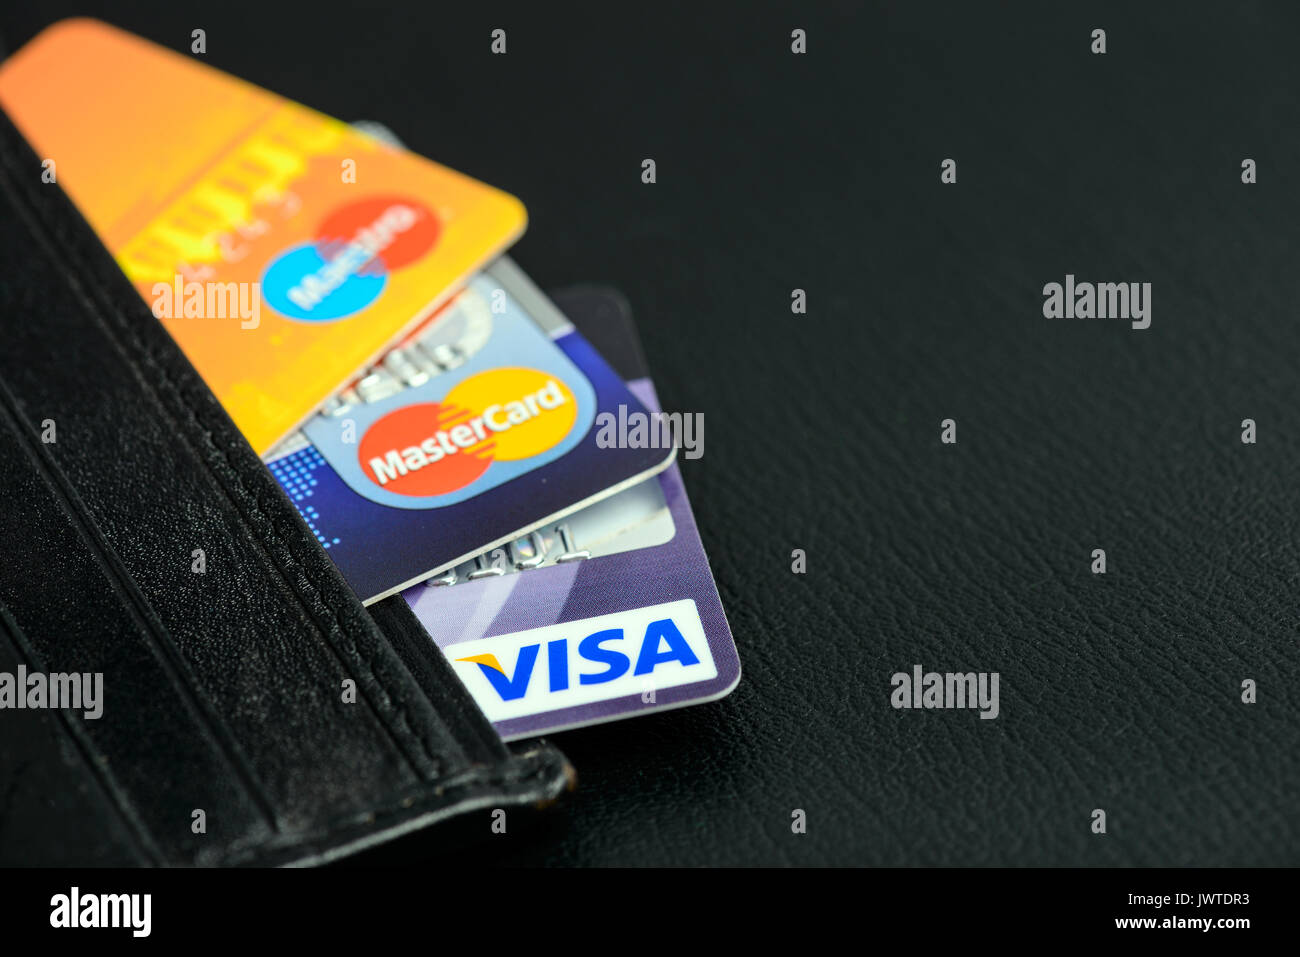 Moscowi, Russia - August 05, 2017: Visa and Mastercard credit cards in leather wallet - Stock Image